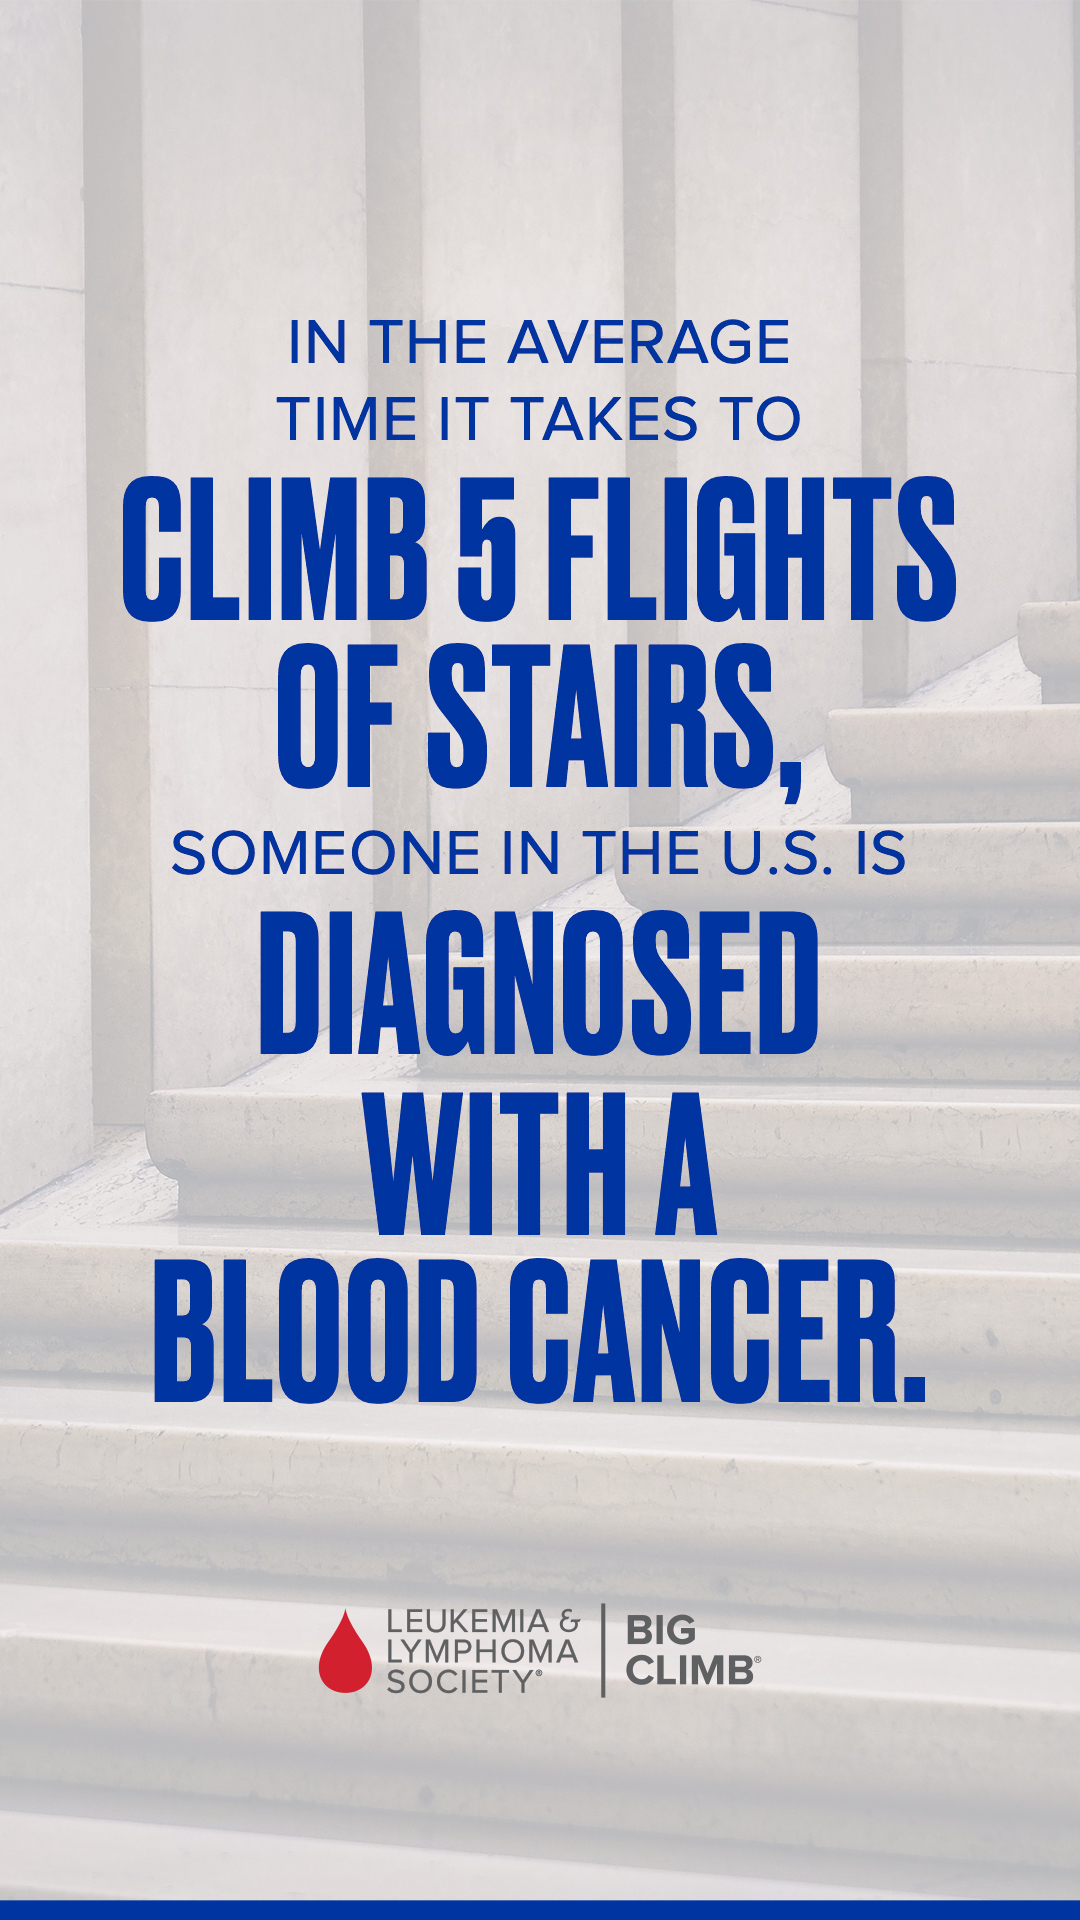 Join LLS on 6/13/2020 for #BigVirtualClimb.